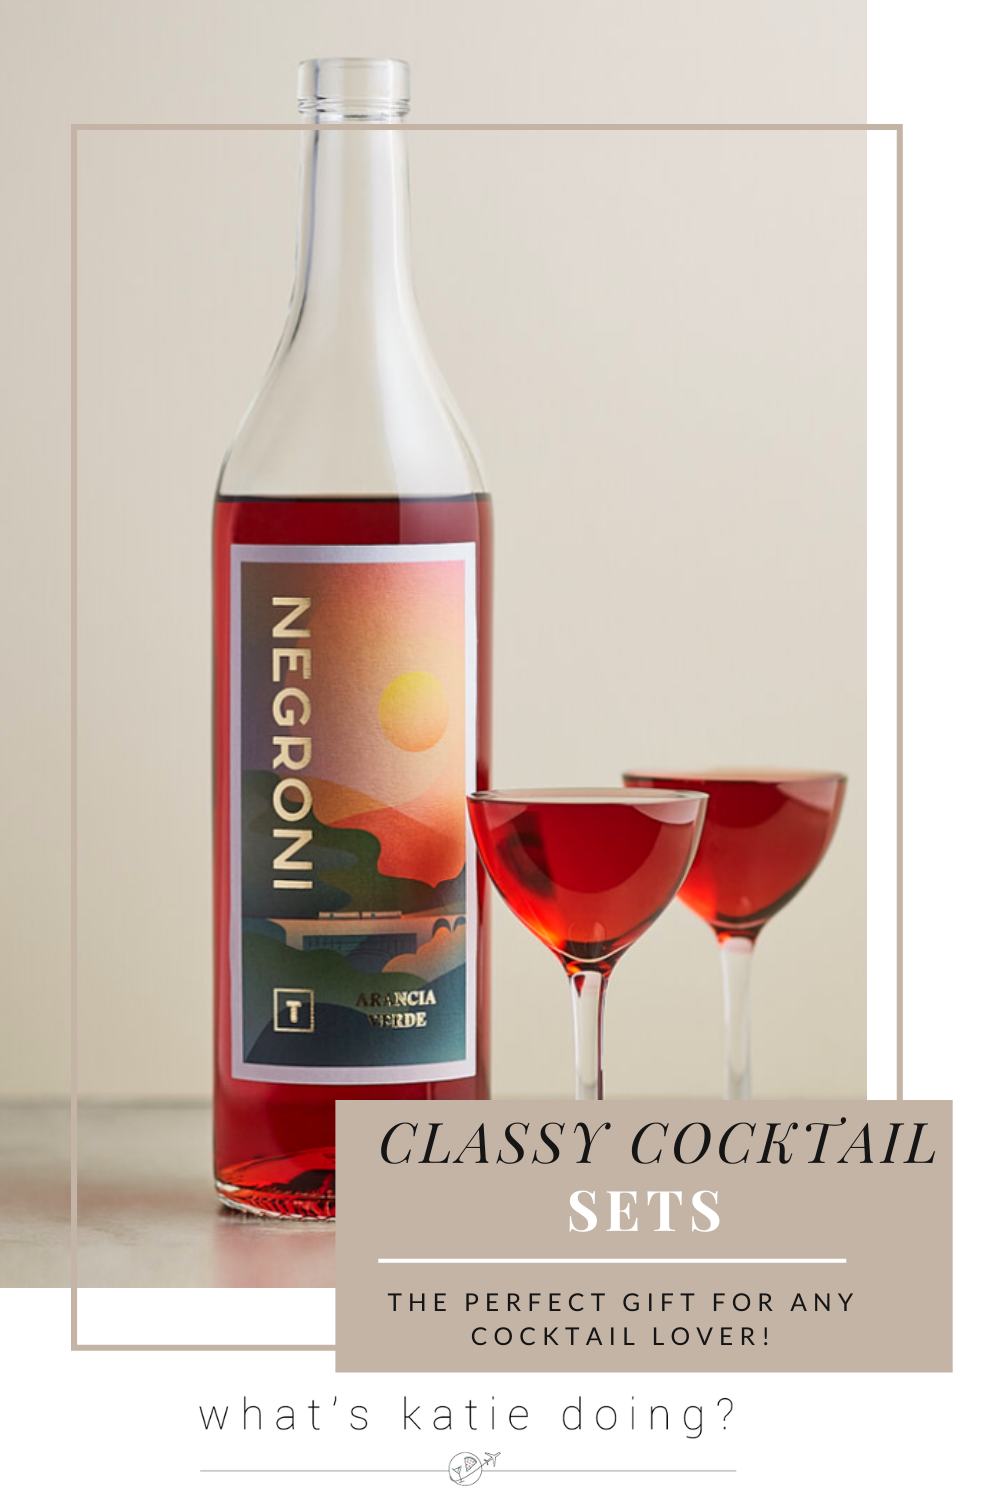 Classy Cocktail Sets - Untitled Bar Termini negroni and rose liqueur glasses